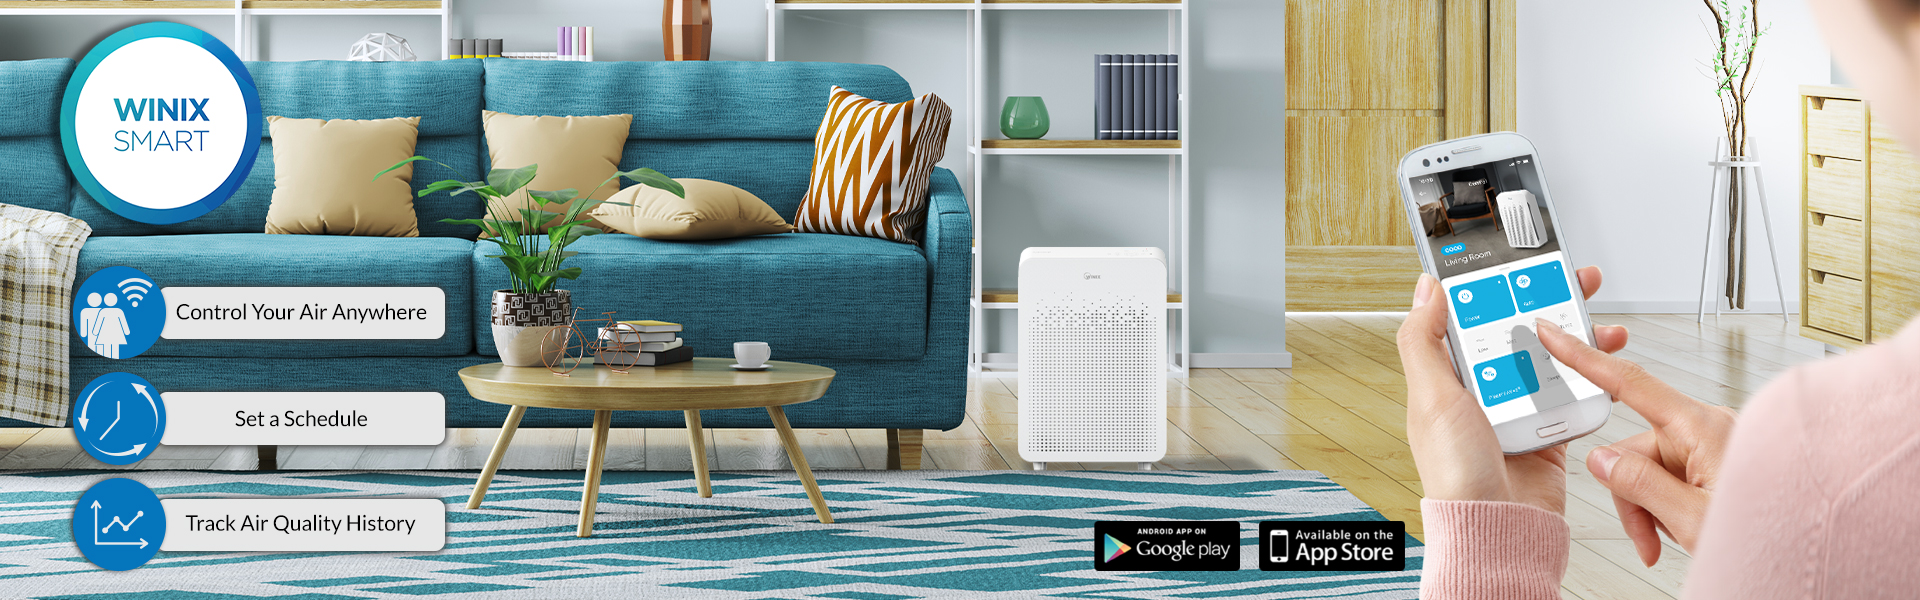 C545 WiFi Enabled Air Purifier